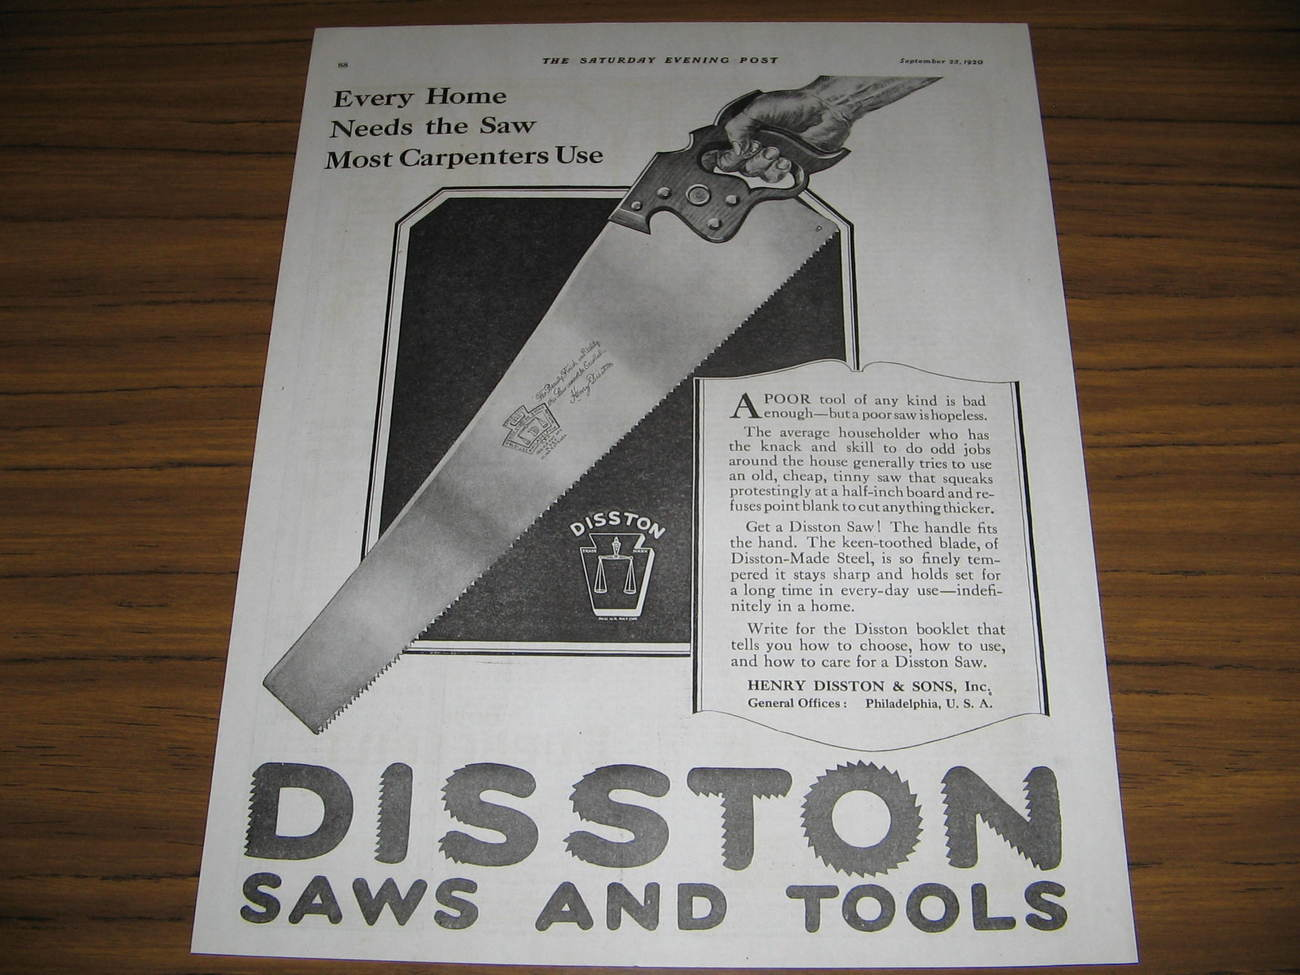 1-920-disstonsaws